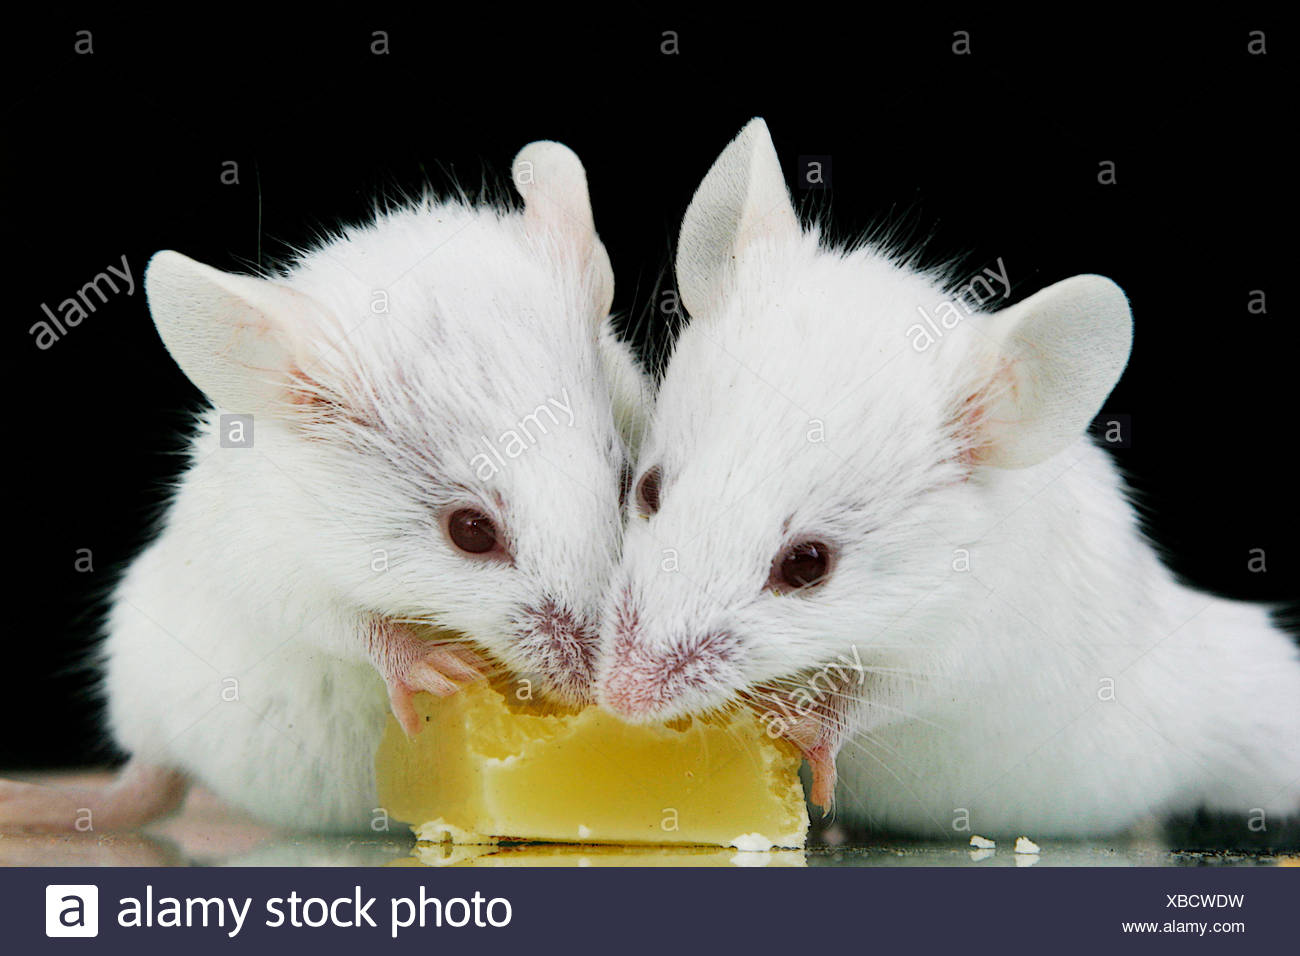 little rodents stockfotos little rodents bilder alamy. Black Bedroom Furniture Sets. Home Design Ideas